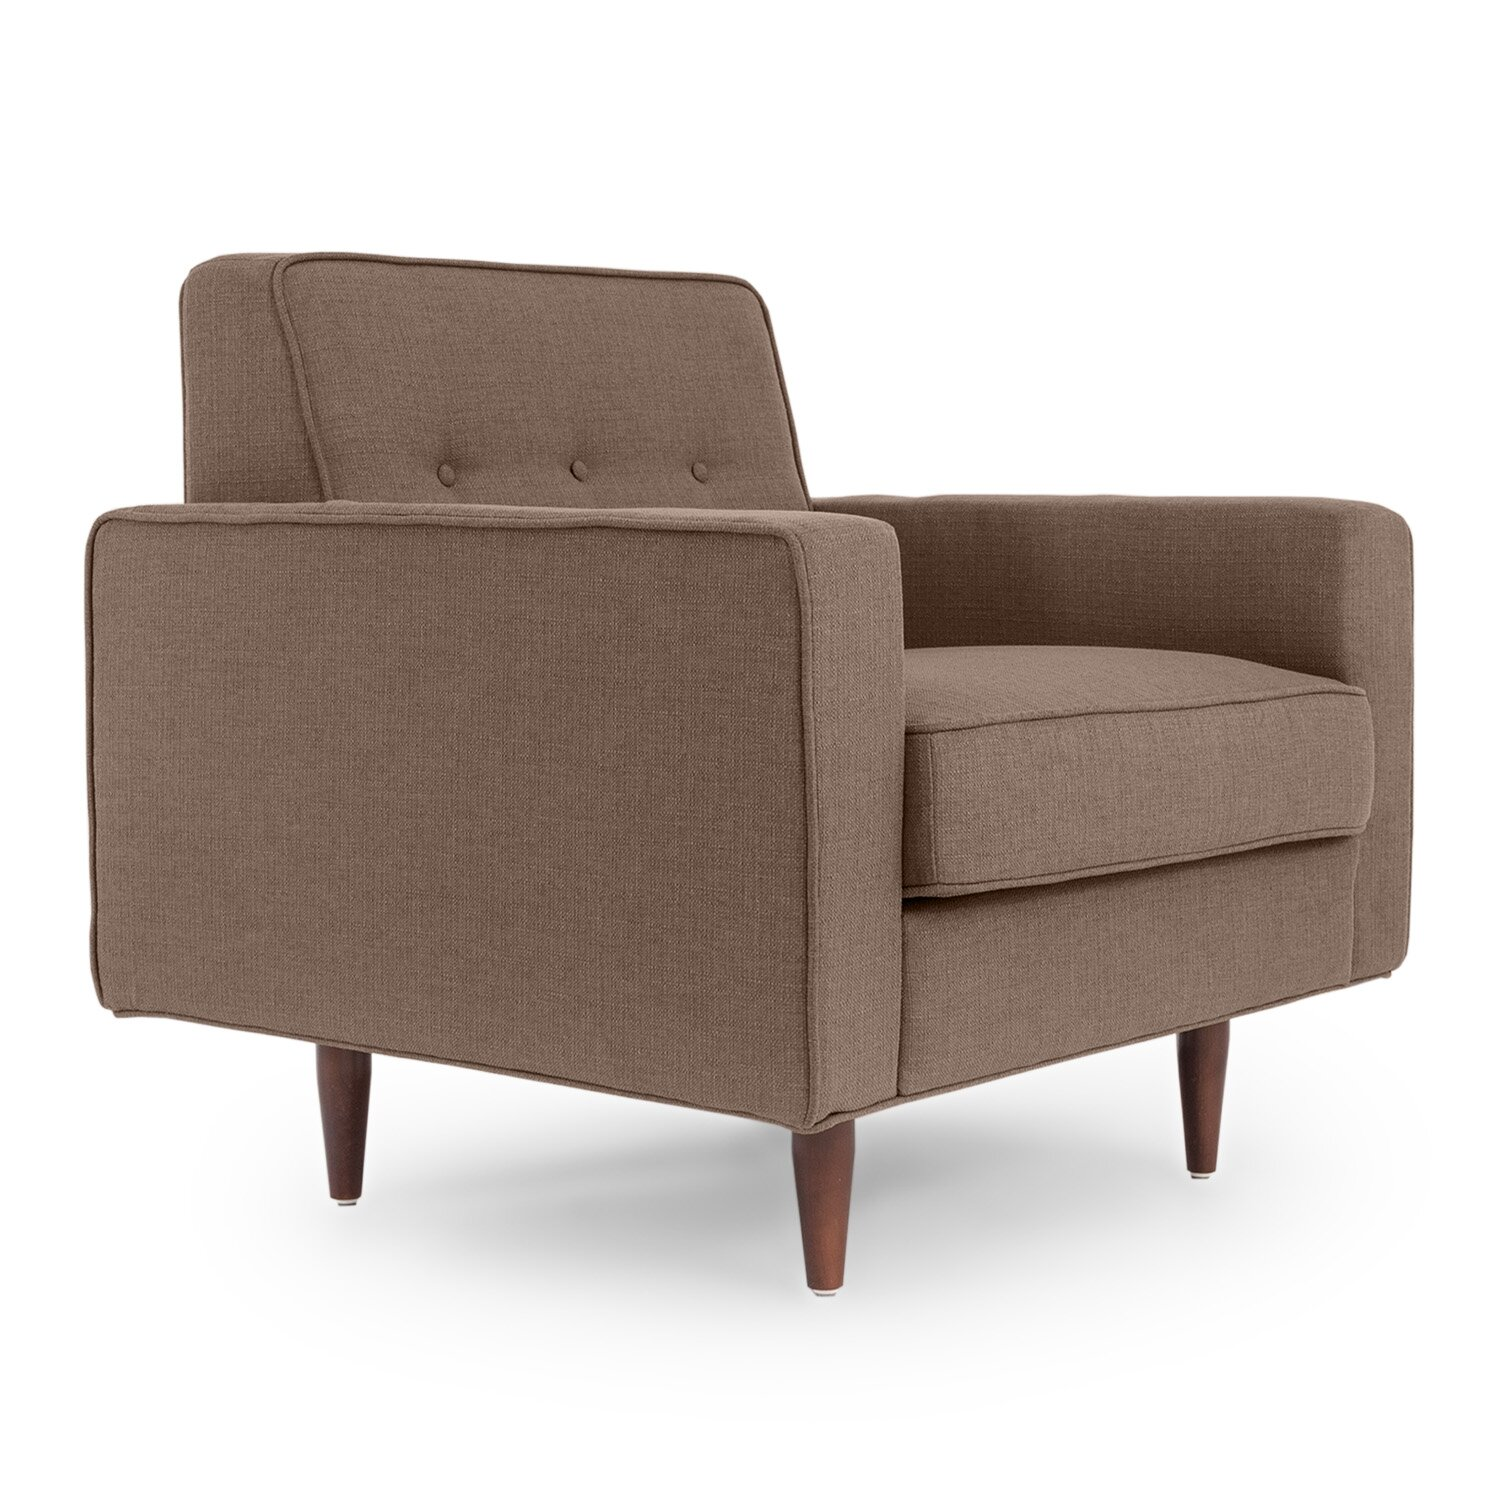 Kardiel eleanor mid century modern arm chair reviews for Modern arm chair